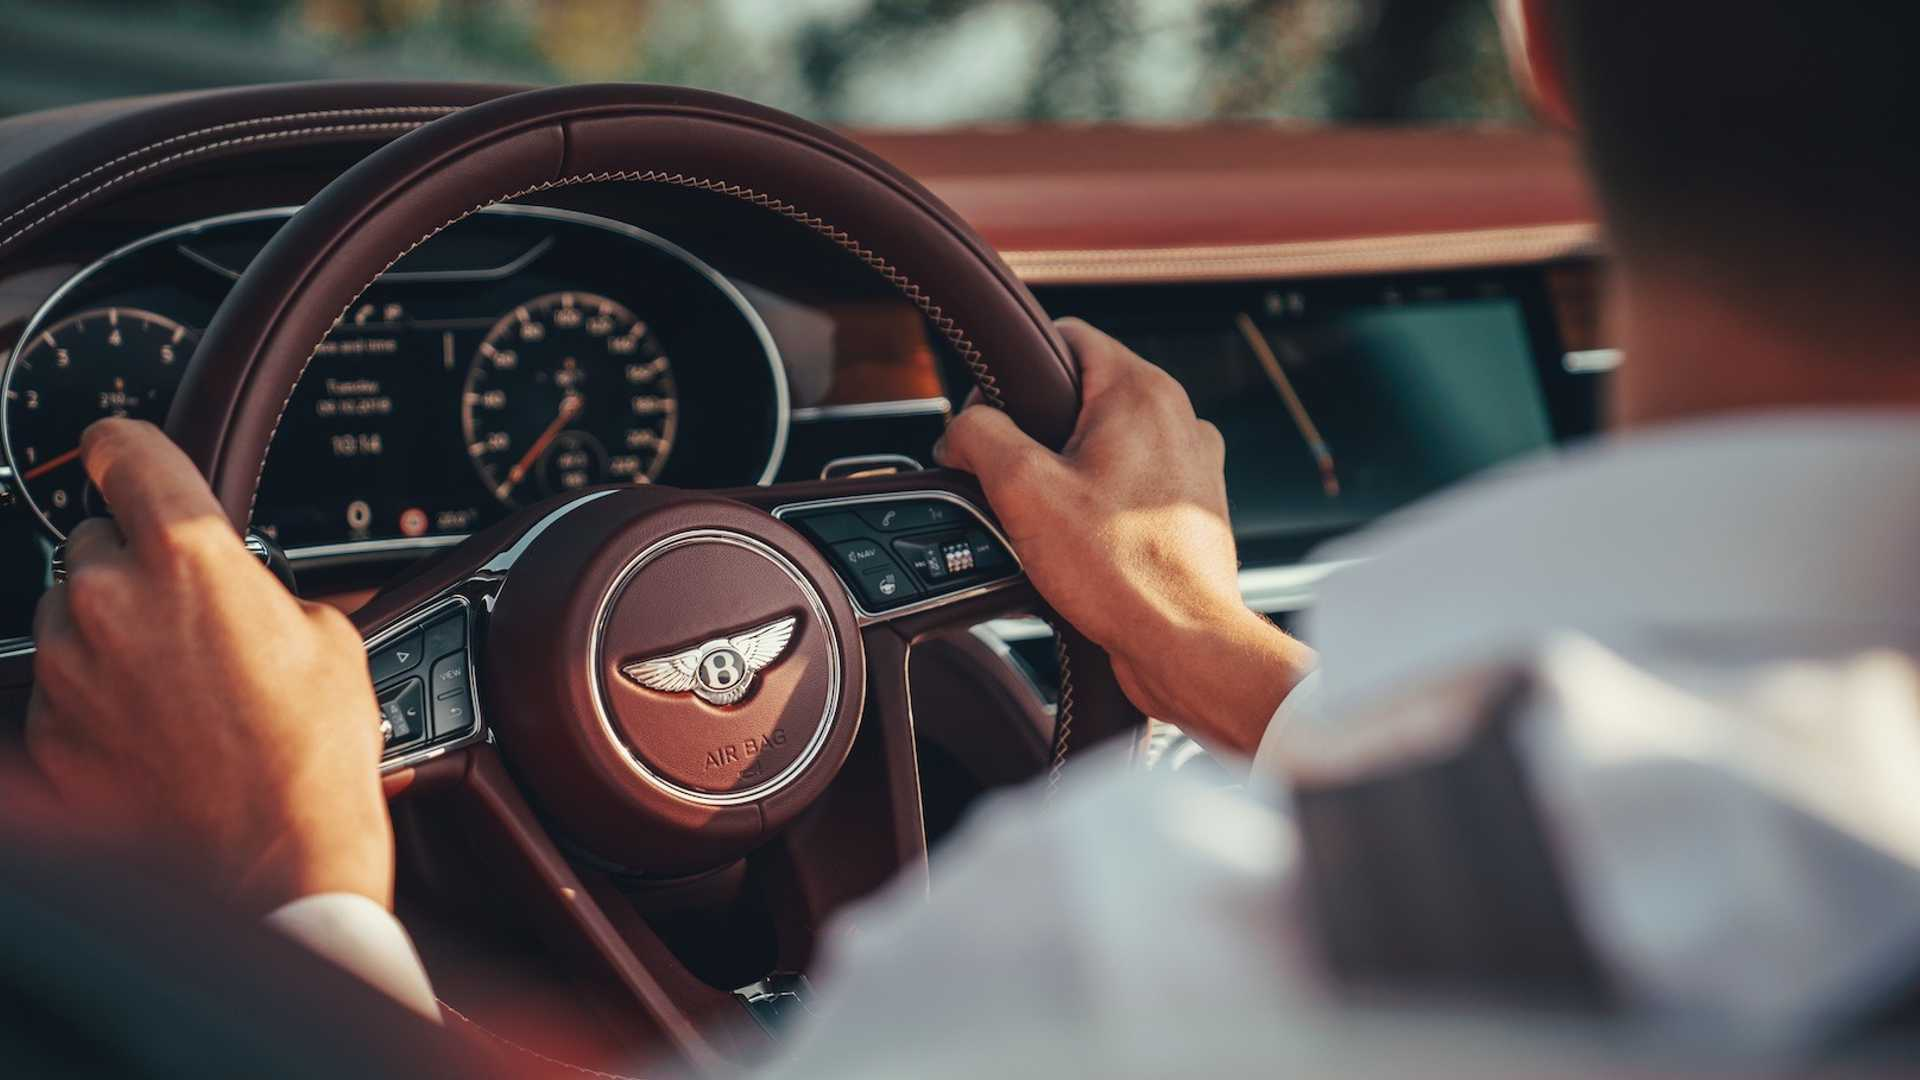 2019-bentley-continental-gt-convertible-unveiled-207-mph-luxury-droptop (24)